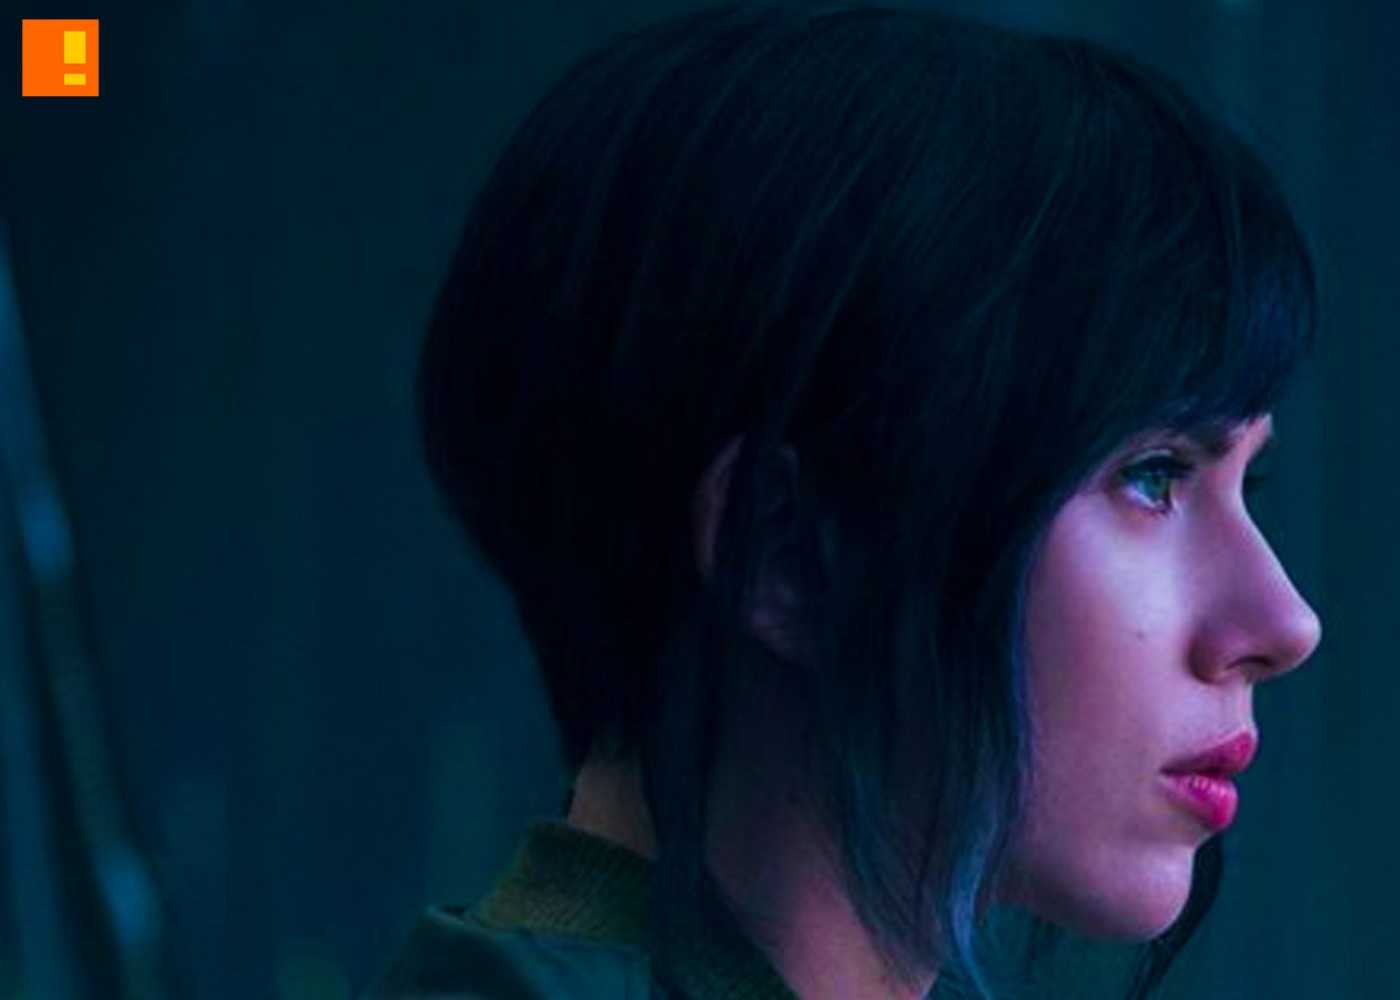 scarlett johansson, major, gits, ghost in the shell, the action pixel, dreamworks, exclusive, first look, image,major, Motoko Kusanagi